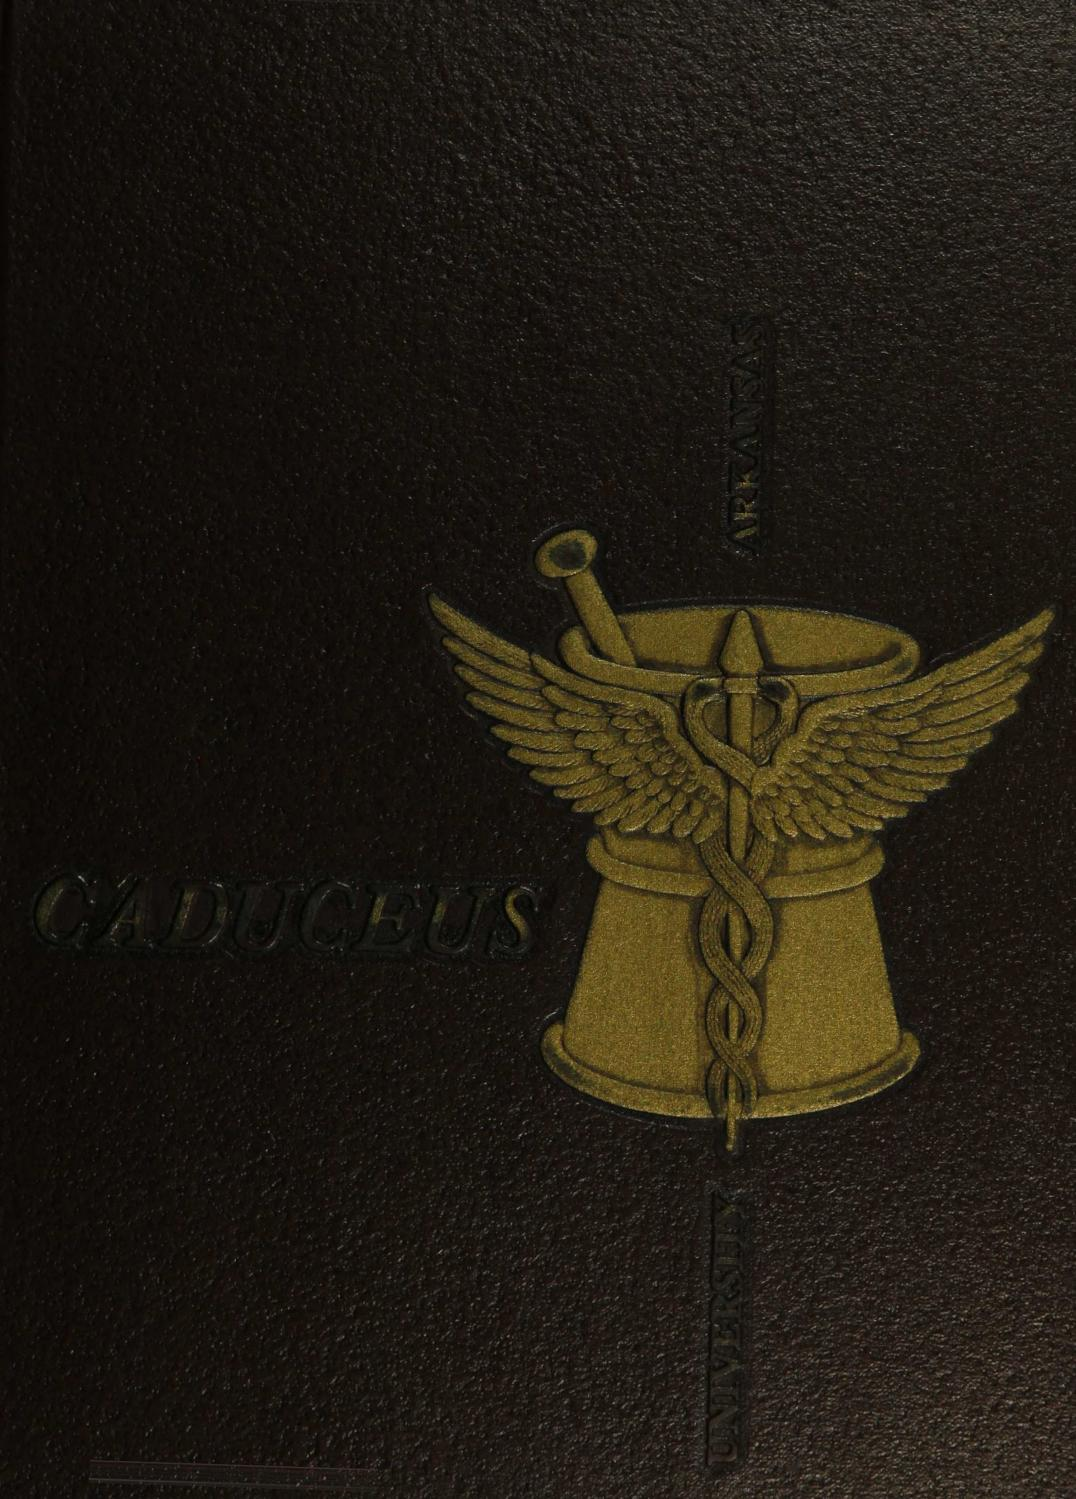 1967 Caduceus By University Of Arkansas For Medical Sciences Issuu